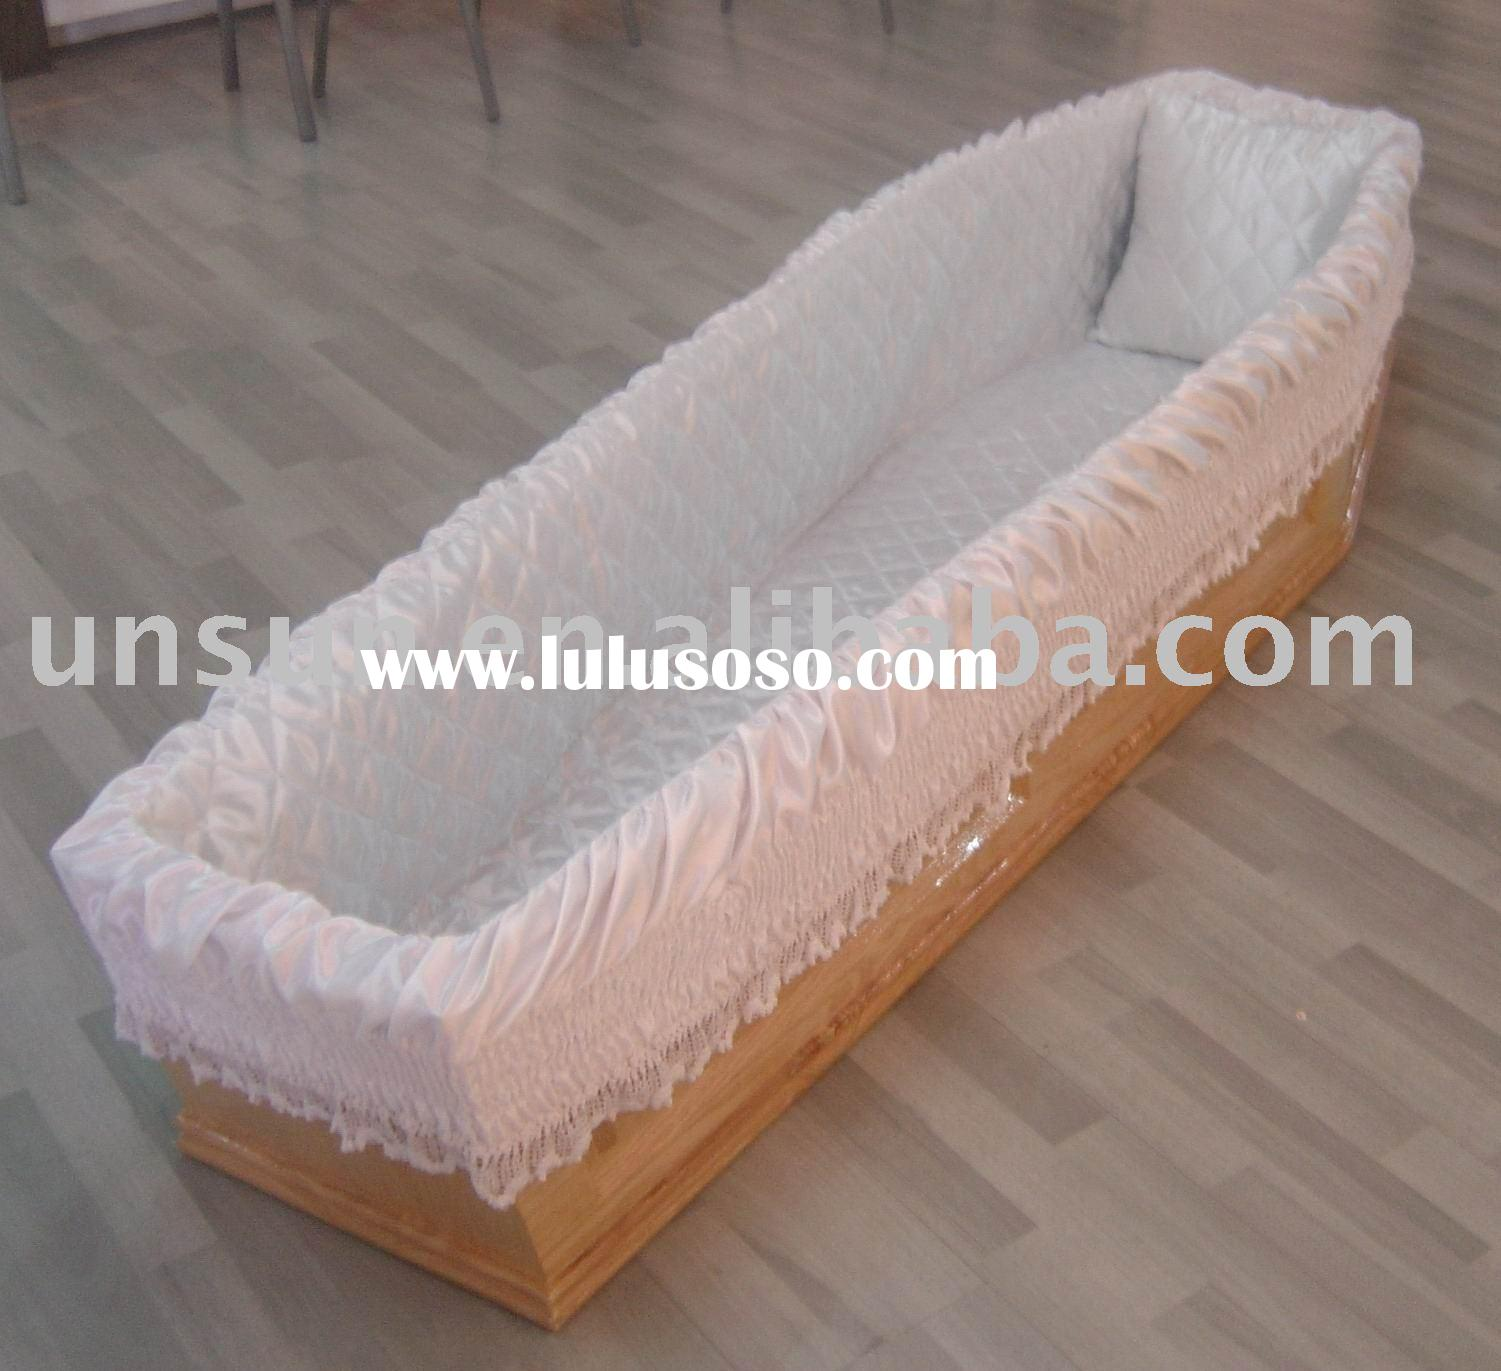 coffin interiors decoration,funeral supplies,casket lining